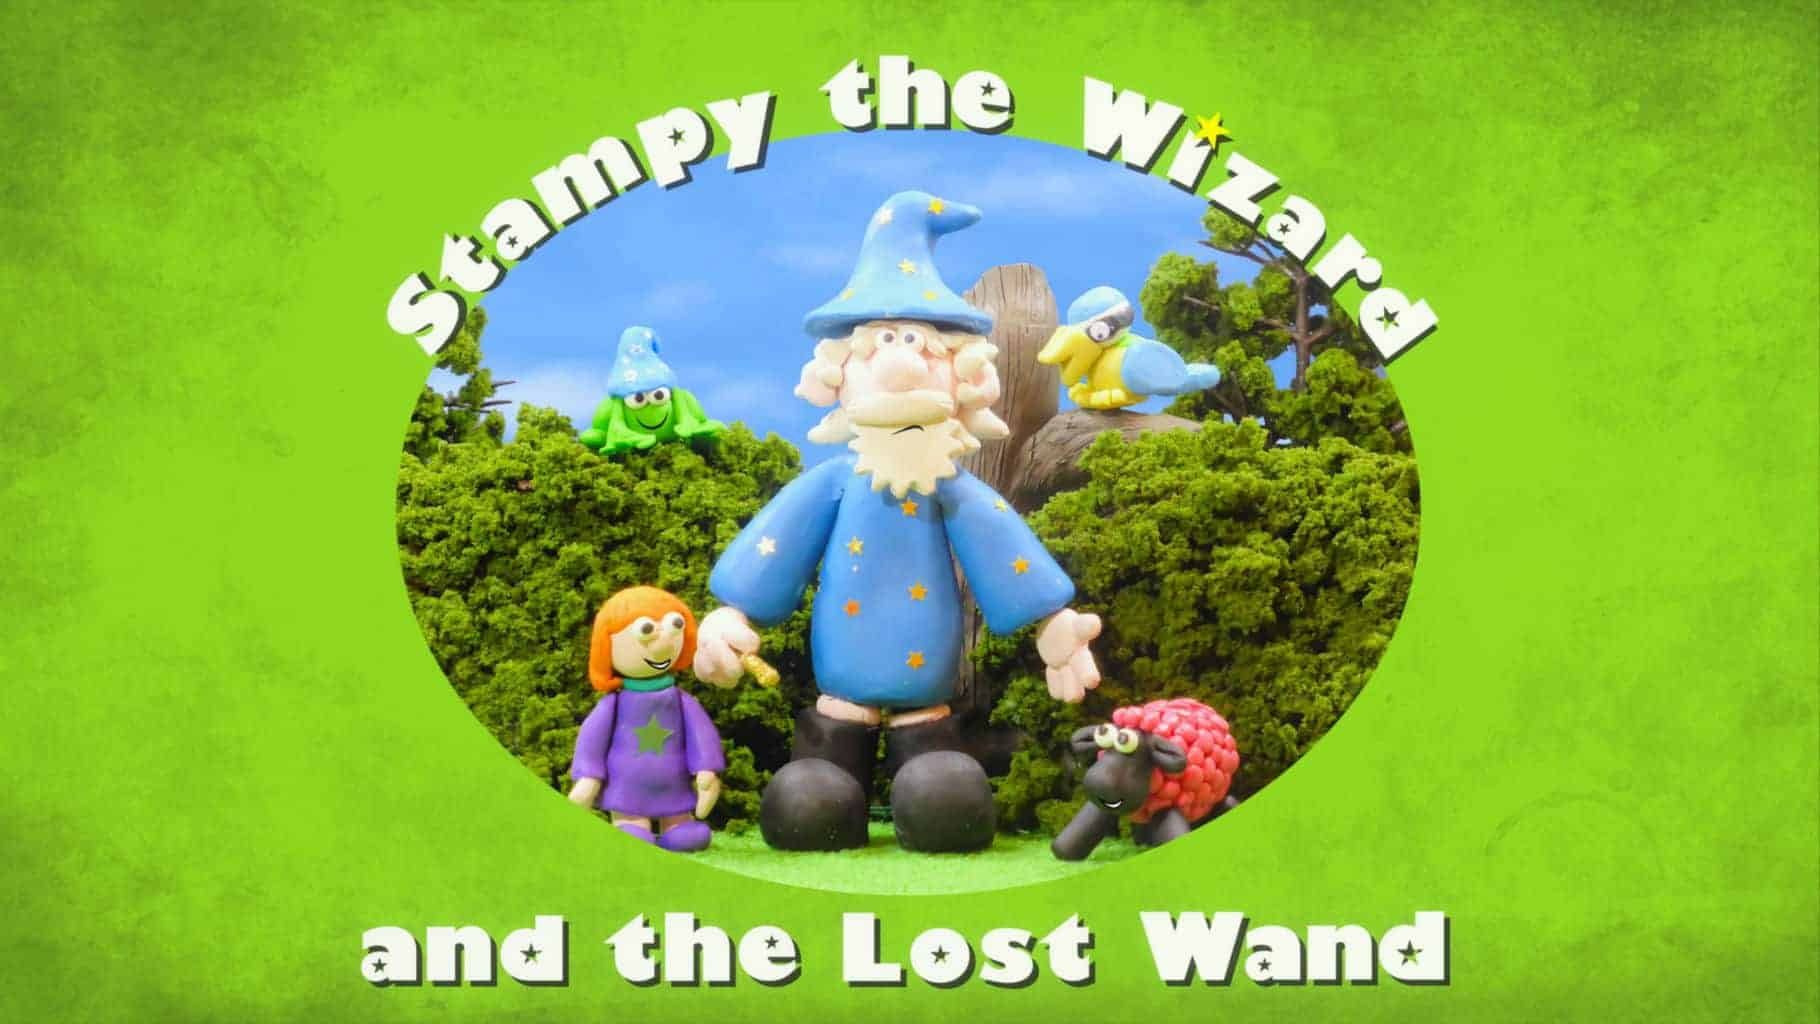 Stampy the Wizard and the Lost Wand